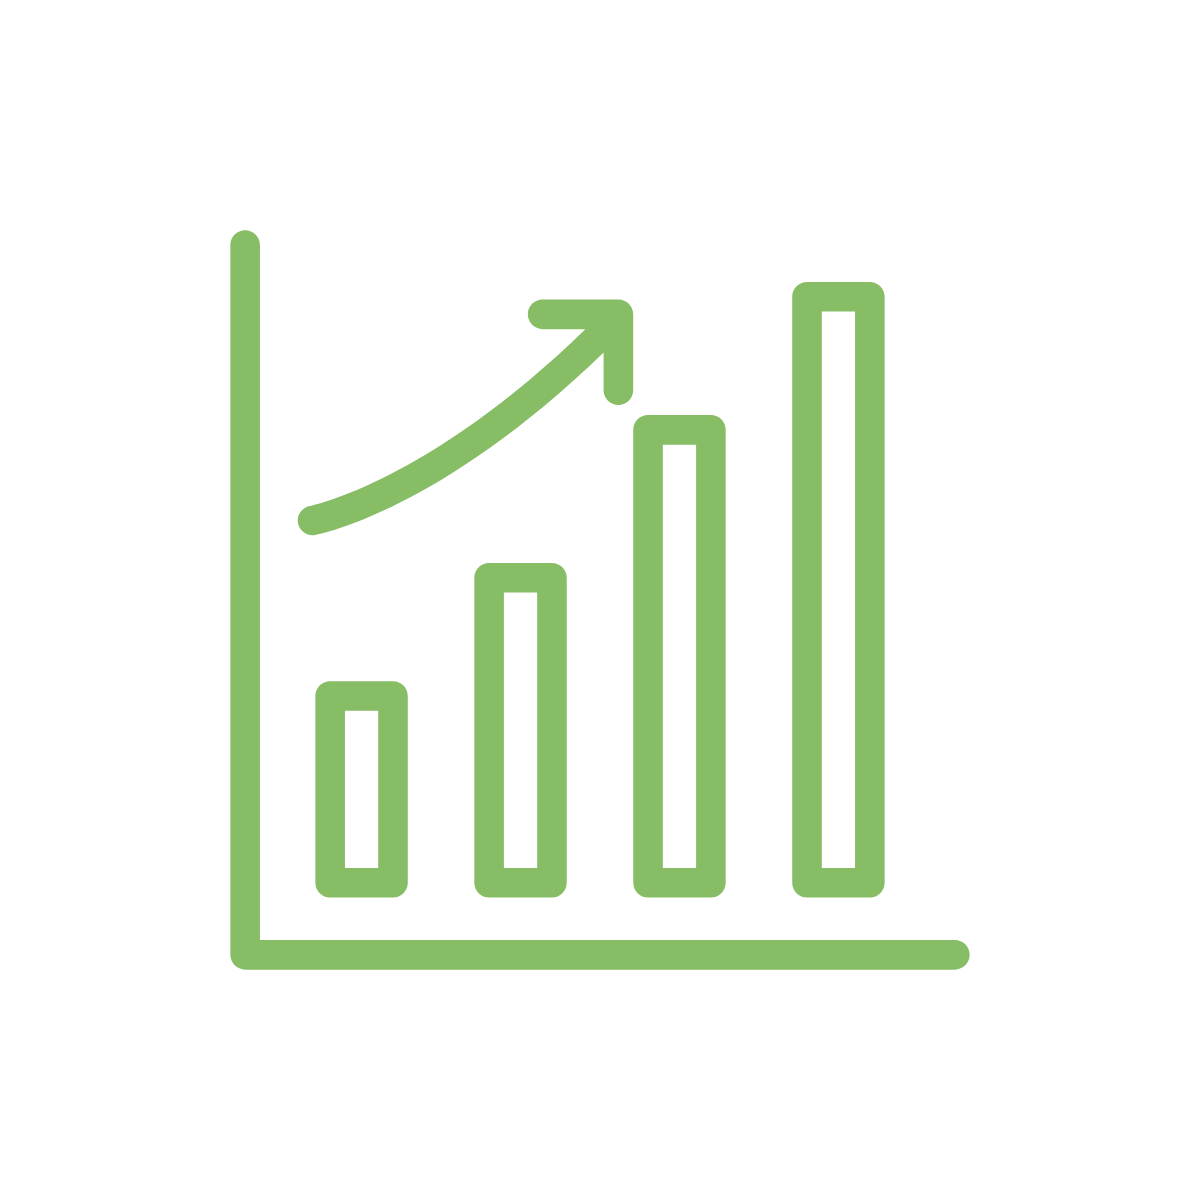 Supporting early growth - Typically you may need help with tax, book-keeping, compliance, reporting, budgeting and analysis, so you can focus on what you do best - running the show